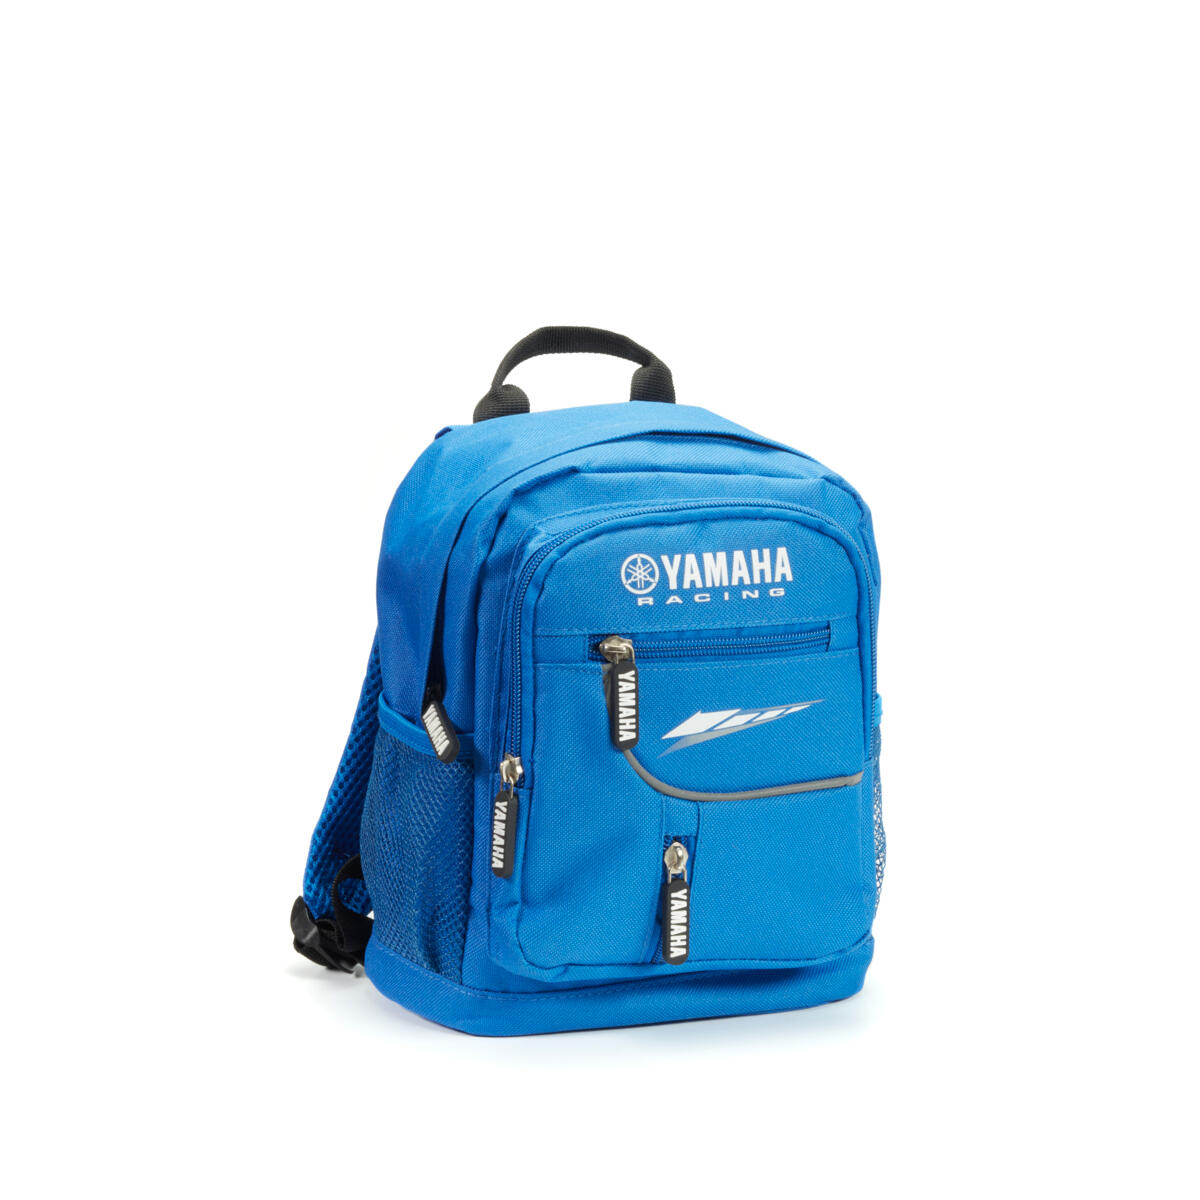 Kids Backpack - Yamaha Racing Blue